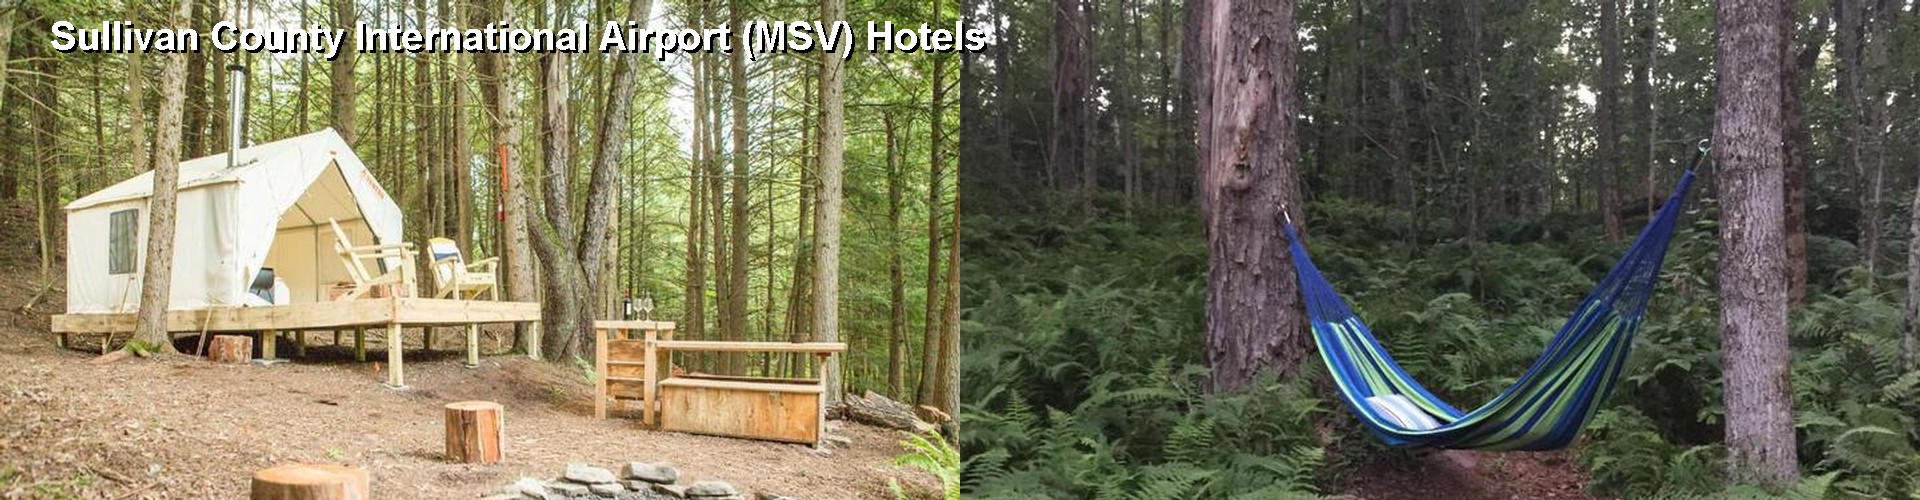 5 Best Hotels near Sullivan County International Airport (MSV)